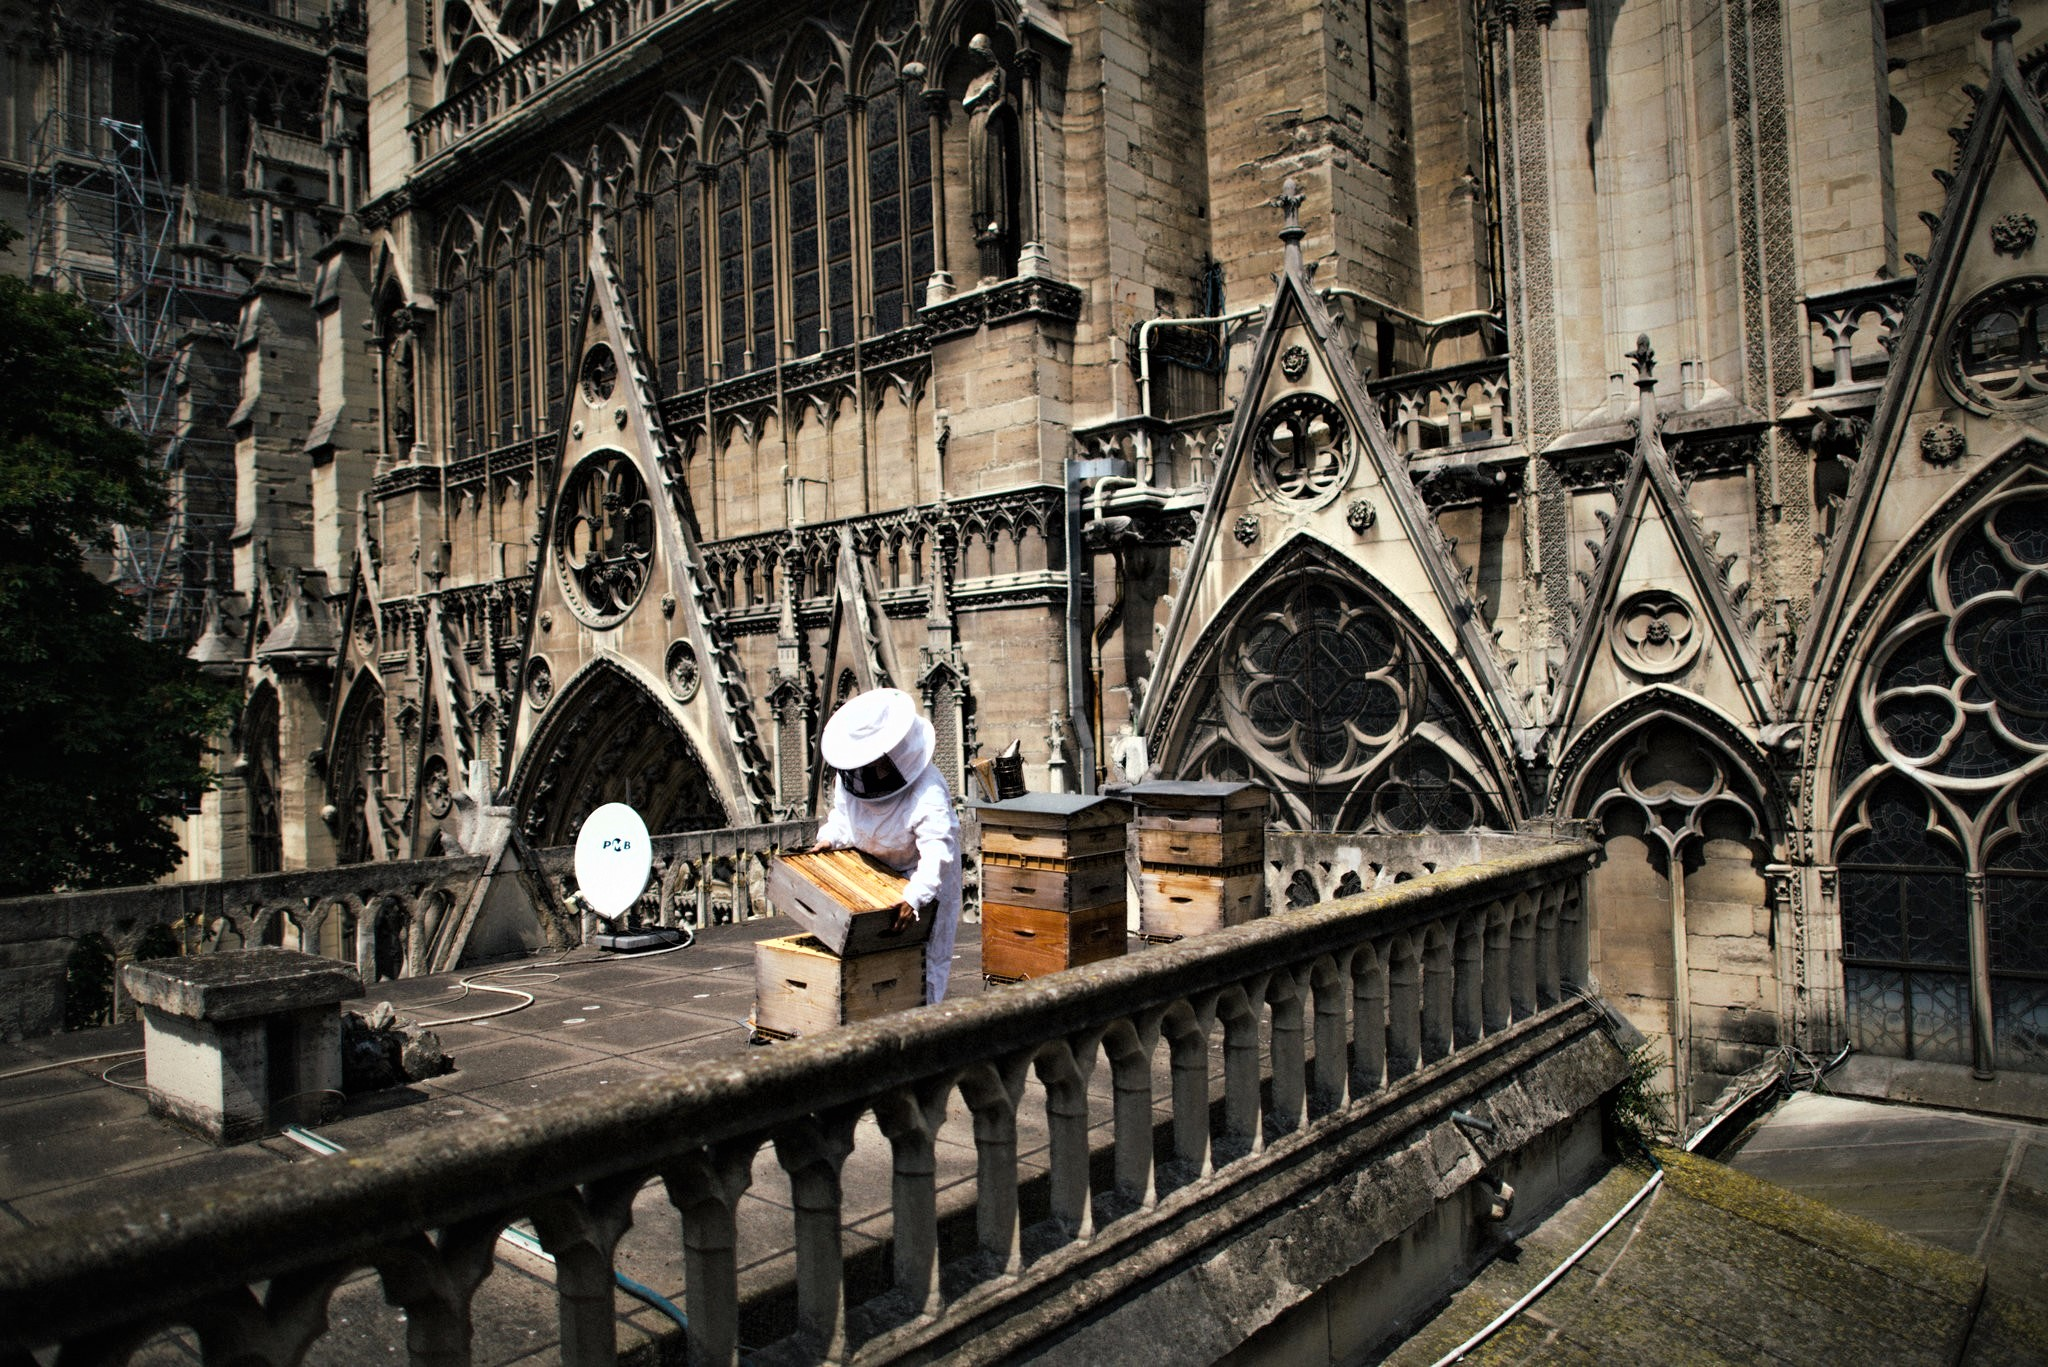 Sibyle Moulin, a beekeeper, tending to hives on the roof of Notre-Dame. Image: Dmitry Kostyukov for The New York Times